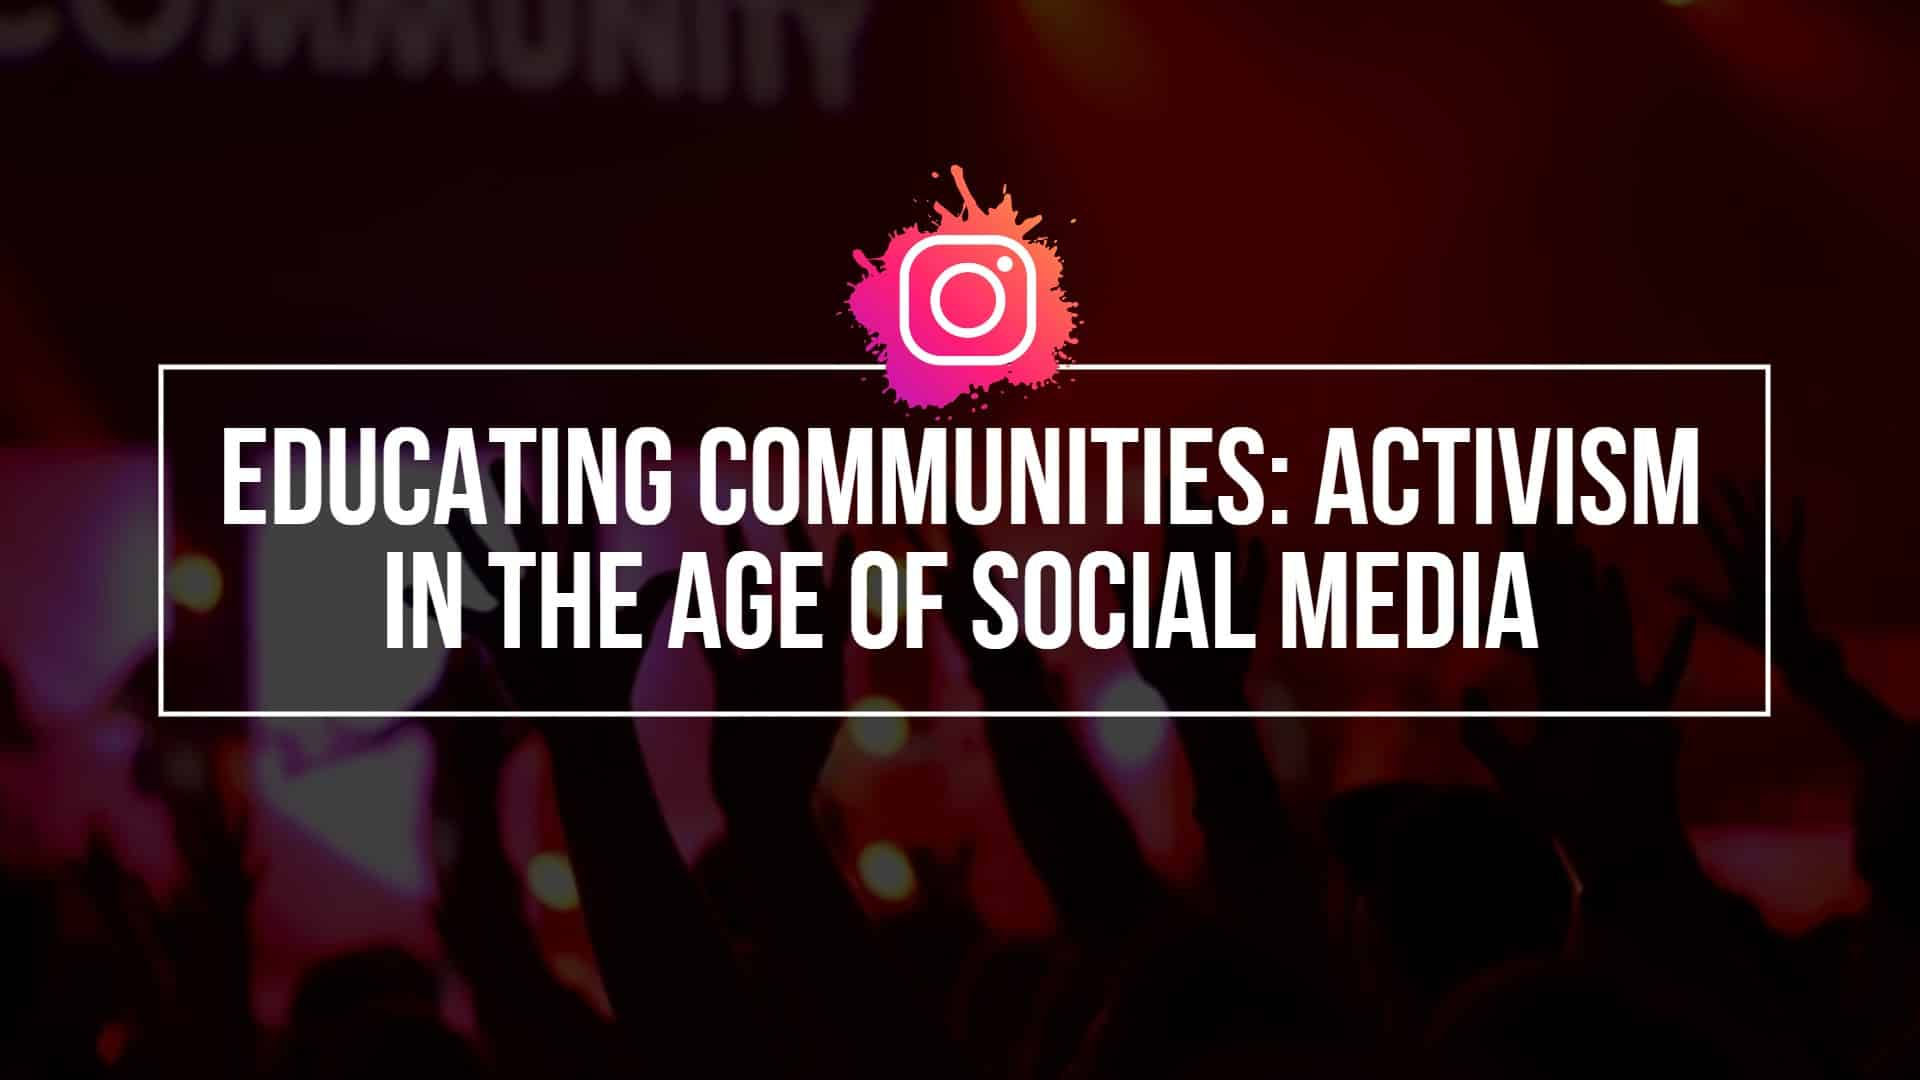 Educating-Communities_-Activism-in-the-Age-of-Social-Media.jpg